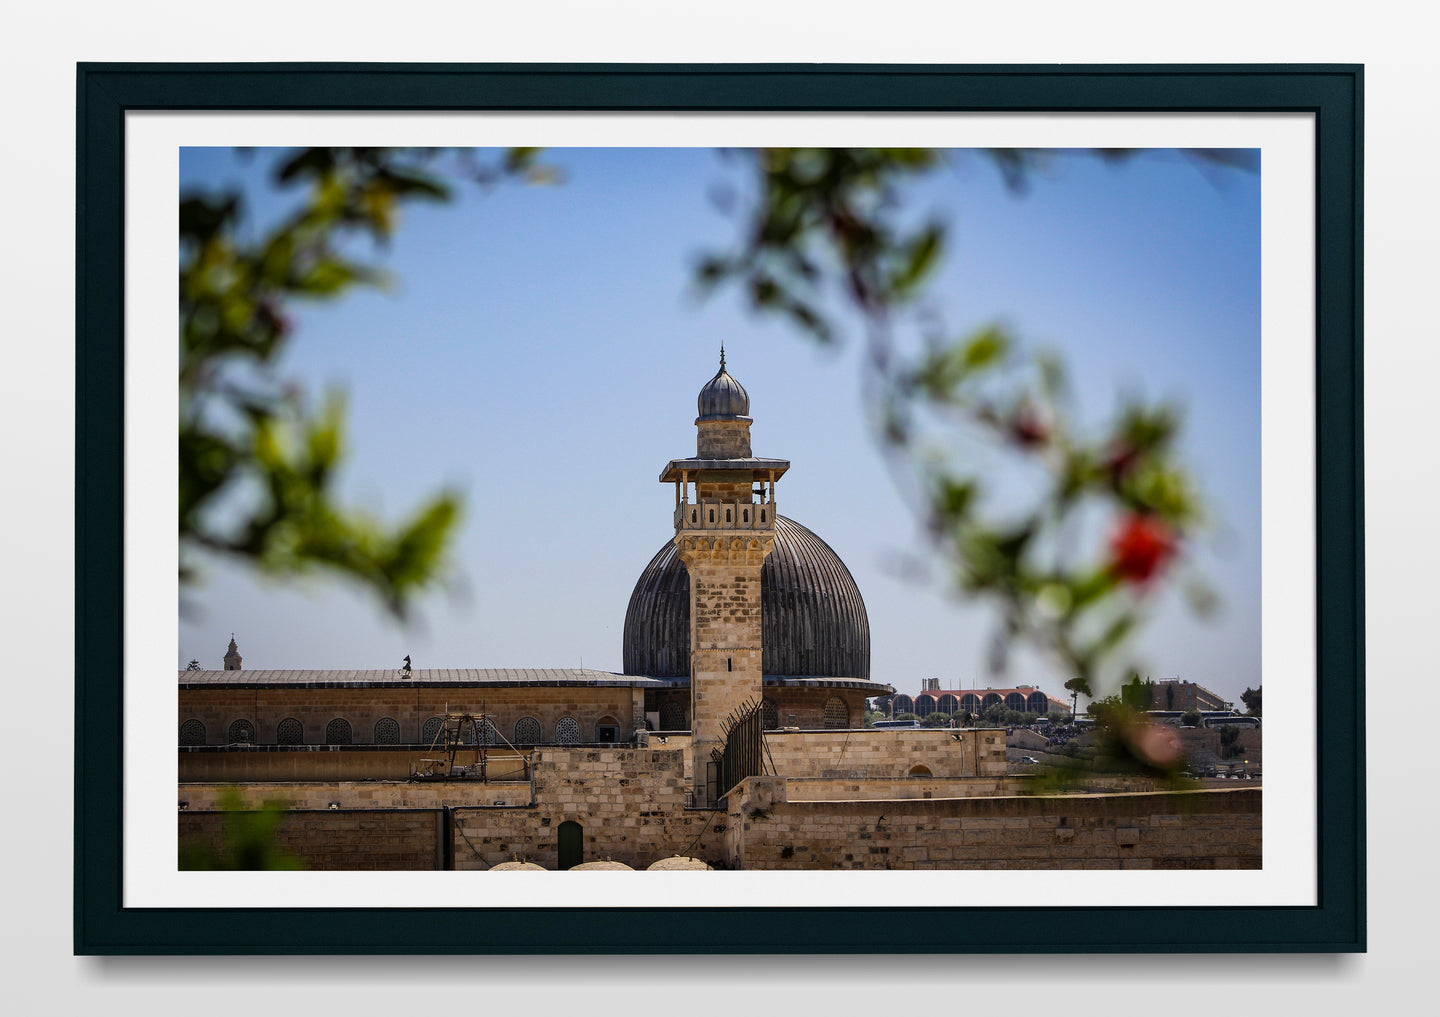 Endless longing to Aqsa